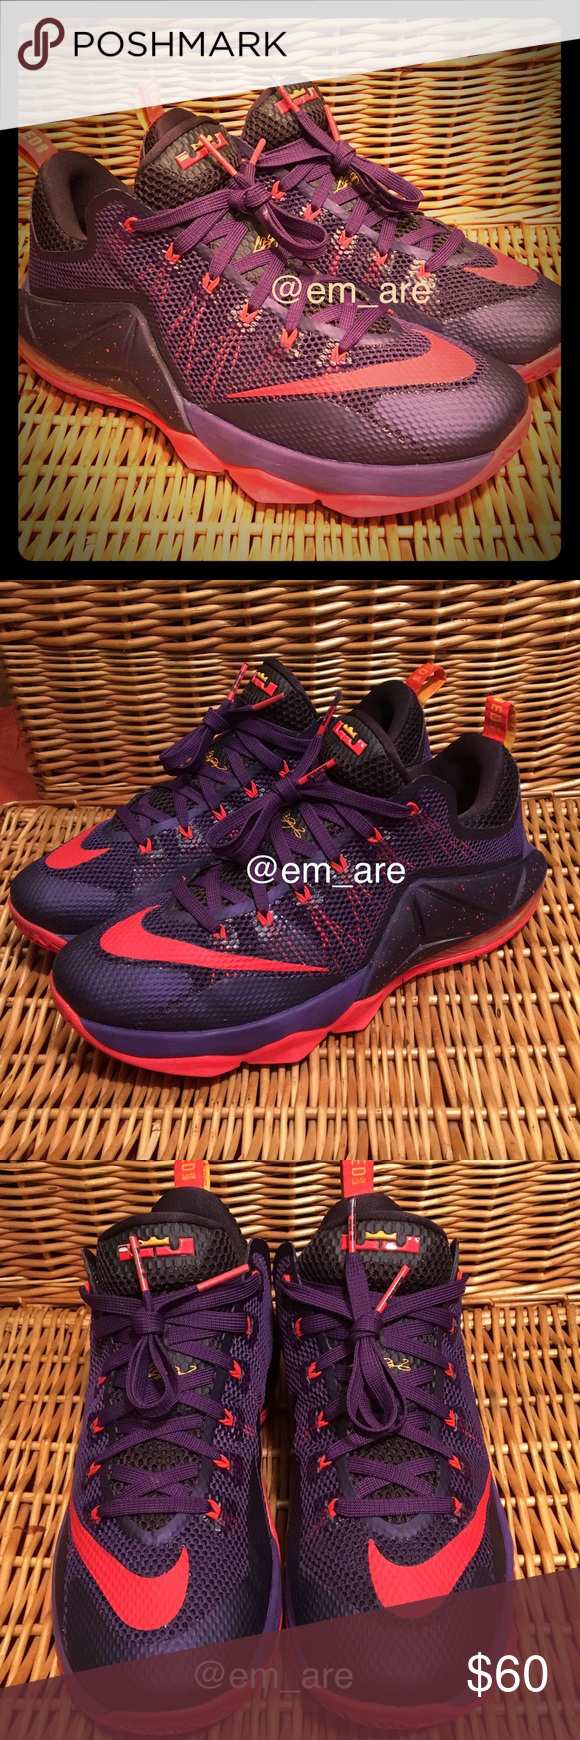 on sale dbbaa 8b238 Nike LeBron 12 low This low-top version is dressed in a Court Purple, Bright  Crimson, Cave Purple, and Laser Orange color scheme.